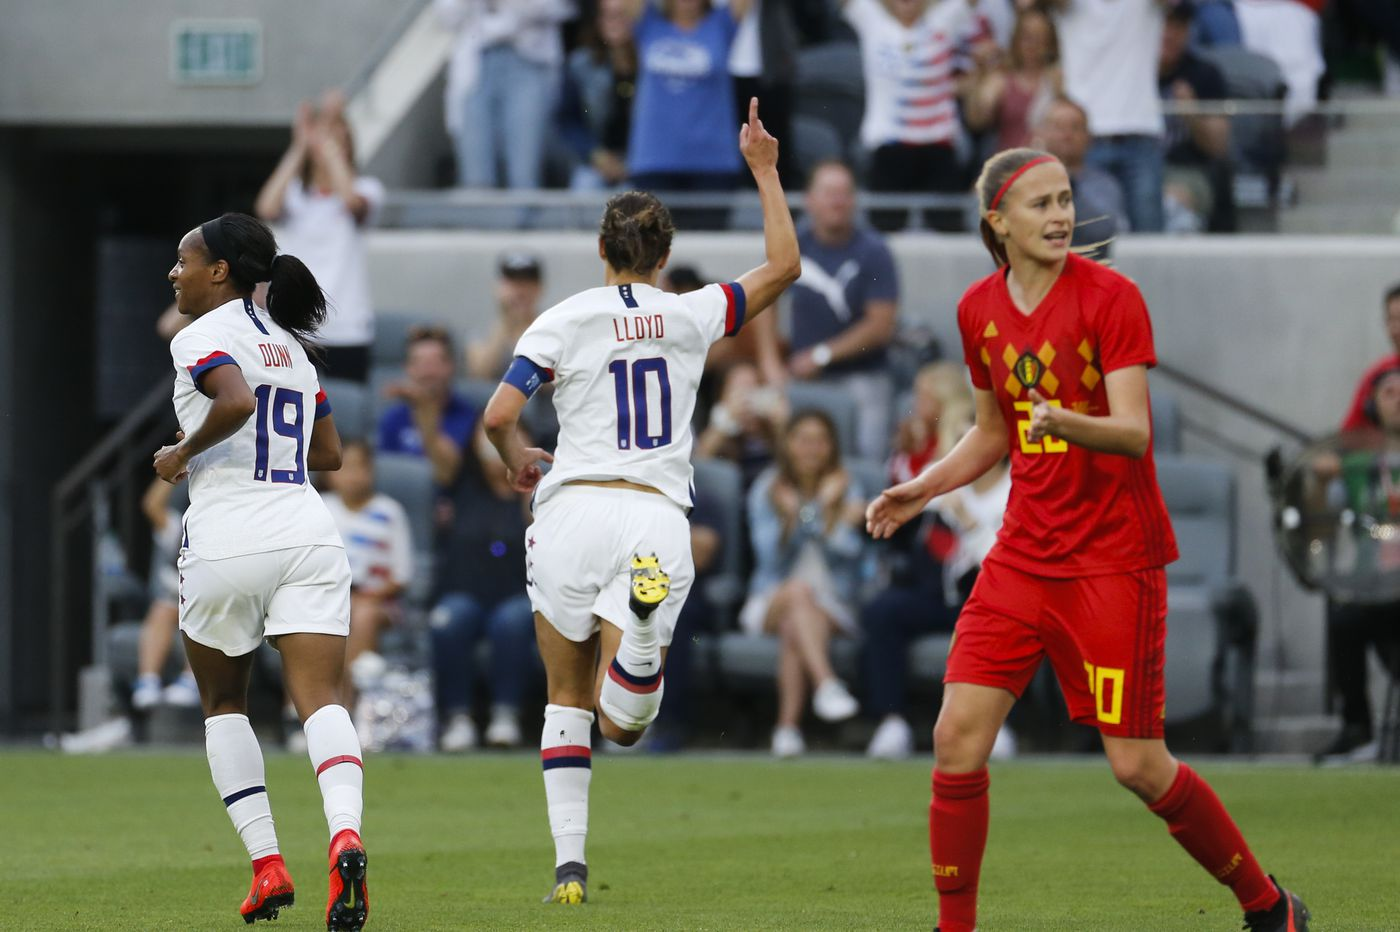 Carli Lloyd's 2 goals spark USWNT in 6-0 rout of Belgium